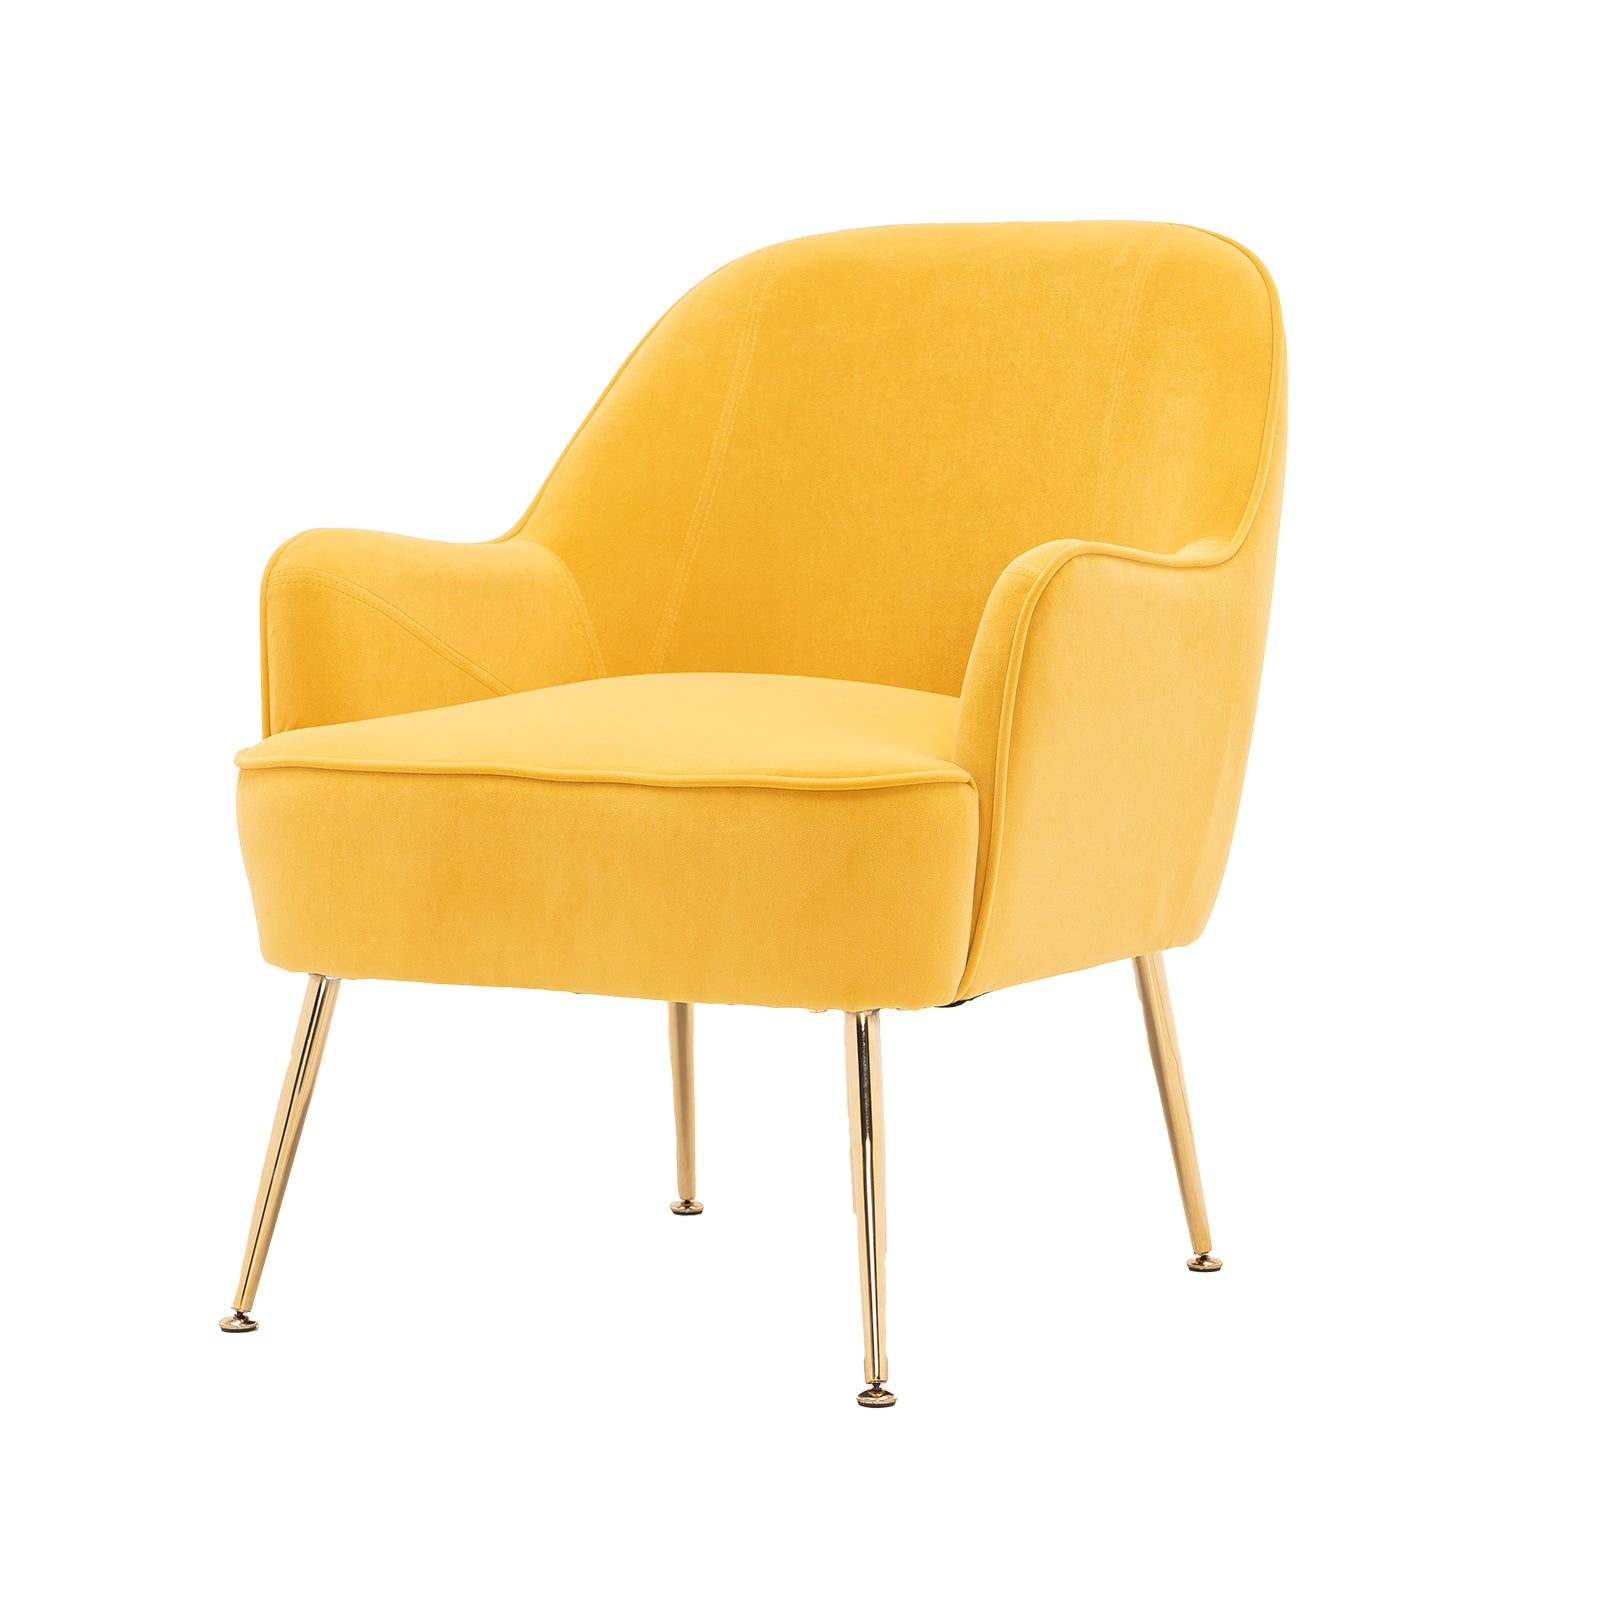 Goldenrod Velvet Accent Chair With Gold Metal Legs BH5272484